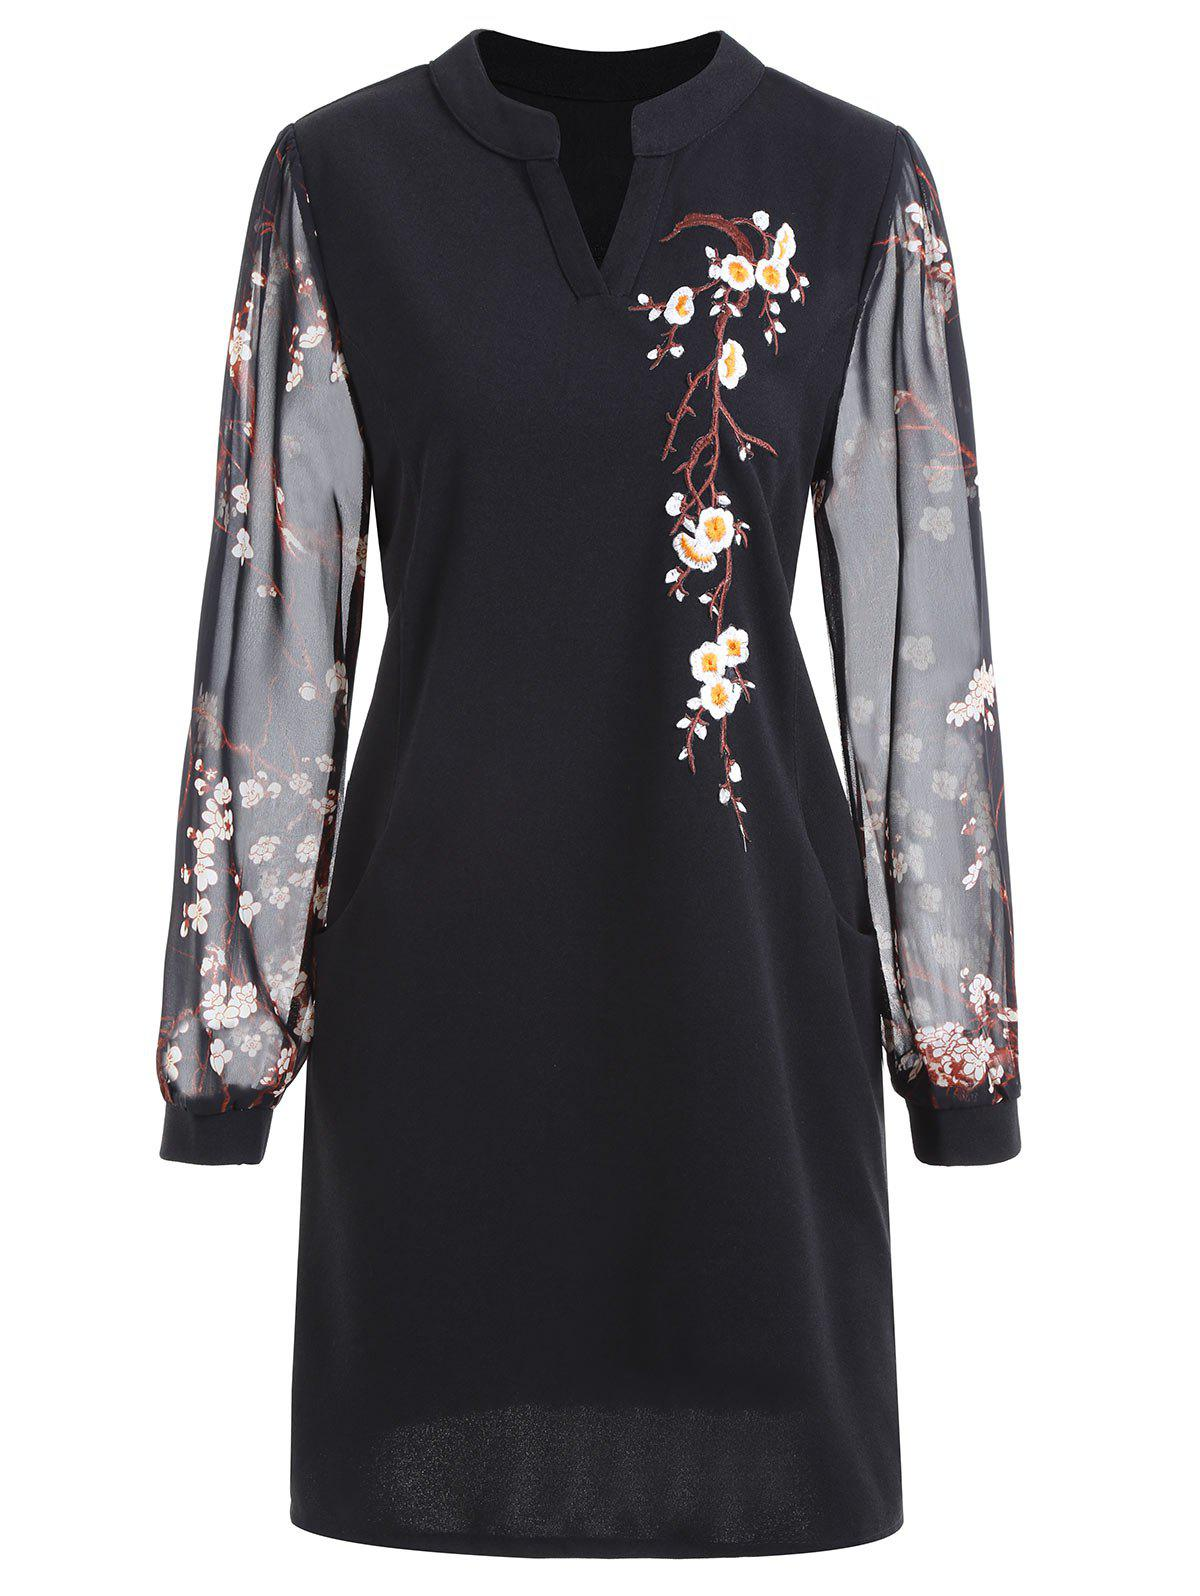 Floral Embroidery Plus Size Mini DressWOMEN<br><br>Size: 5XL; Color: BLACK; Style: Casual; Material: Polyester; Silhouette: Bodycon; Dresses Length: Mini; Neckline: Stand; Sleeve Length: Long Sleeves; Embellishment: Embroidery; Pattern Type: Floral; With Belt: No; Season: Fall; Weight: 0.3450kg; Package Contents: 1 x Dress;